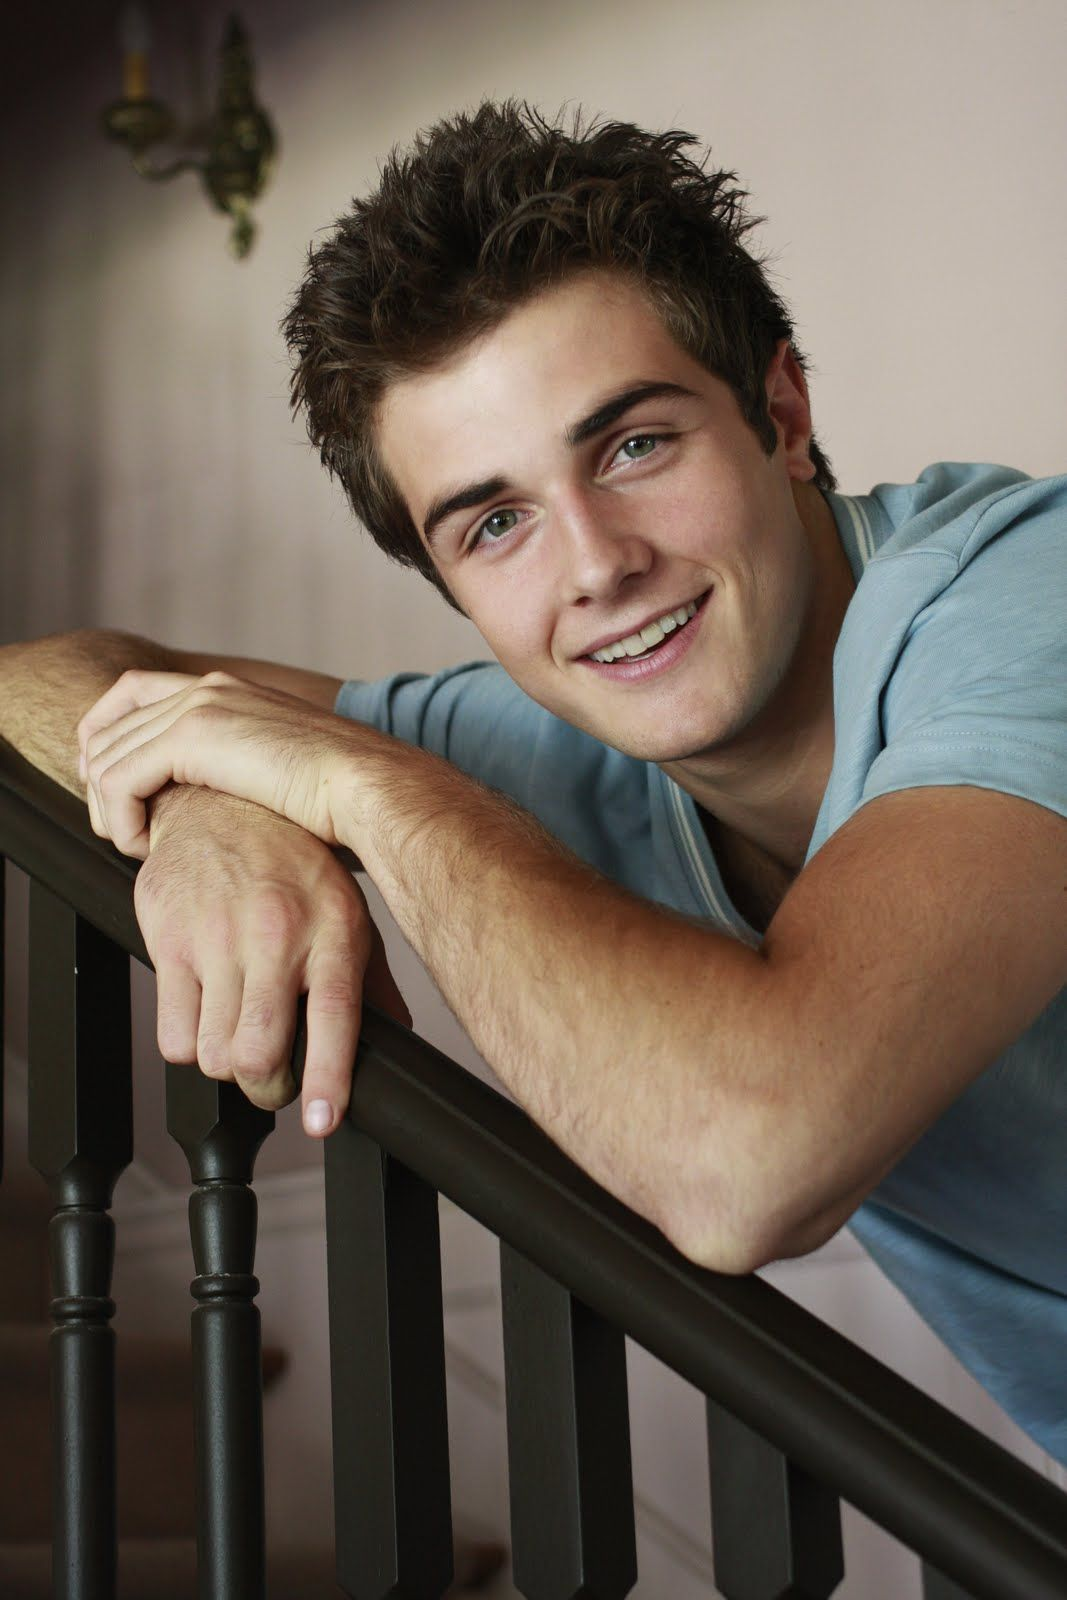 Forum on this topic: June Laverick, beau-mirchoff/